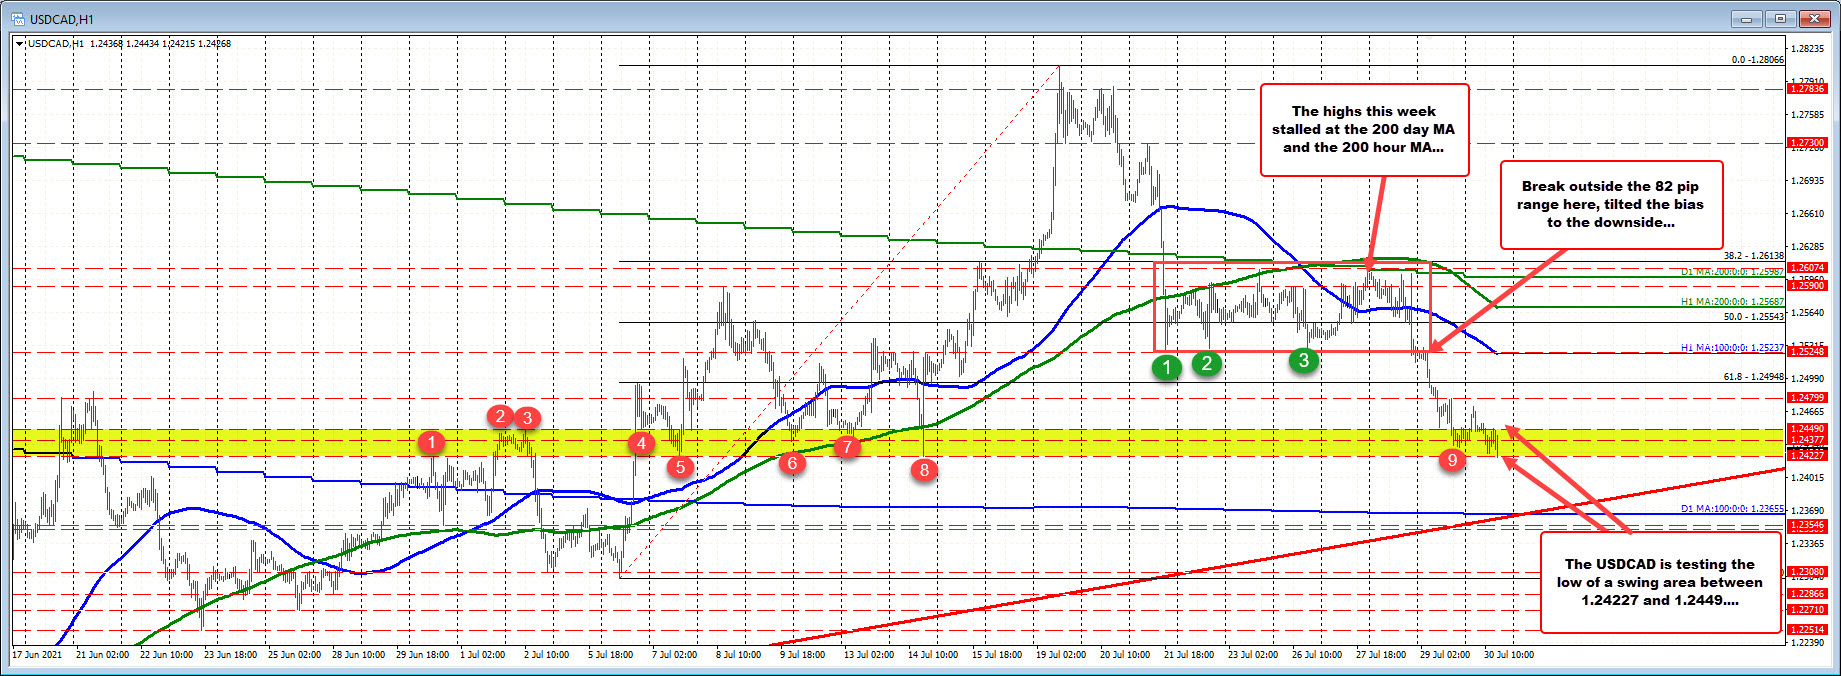 The swing areacome to between 1.24227 and1.24490_